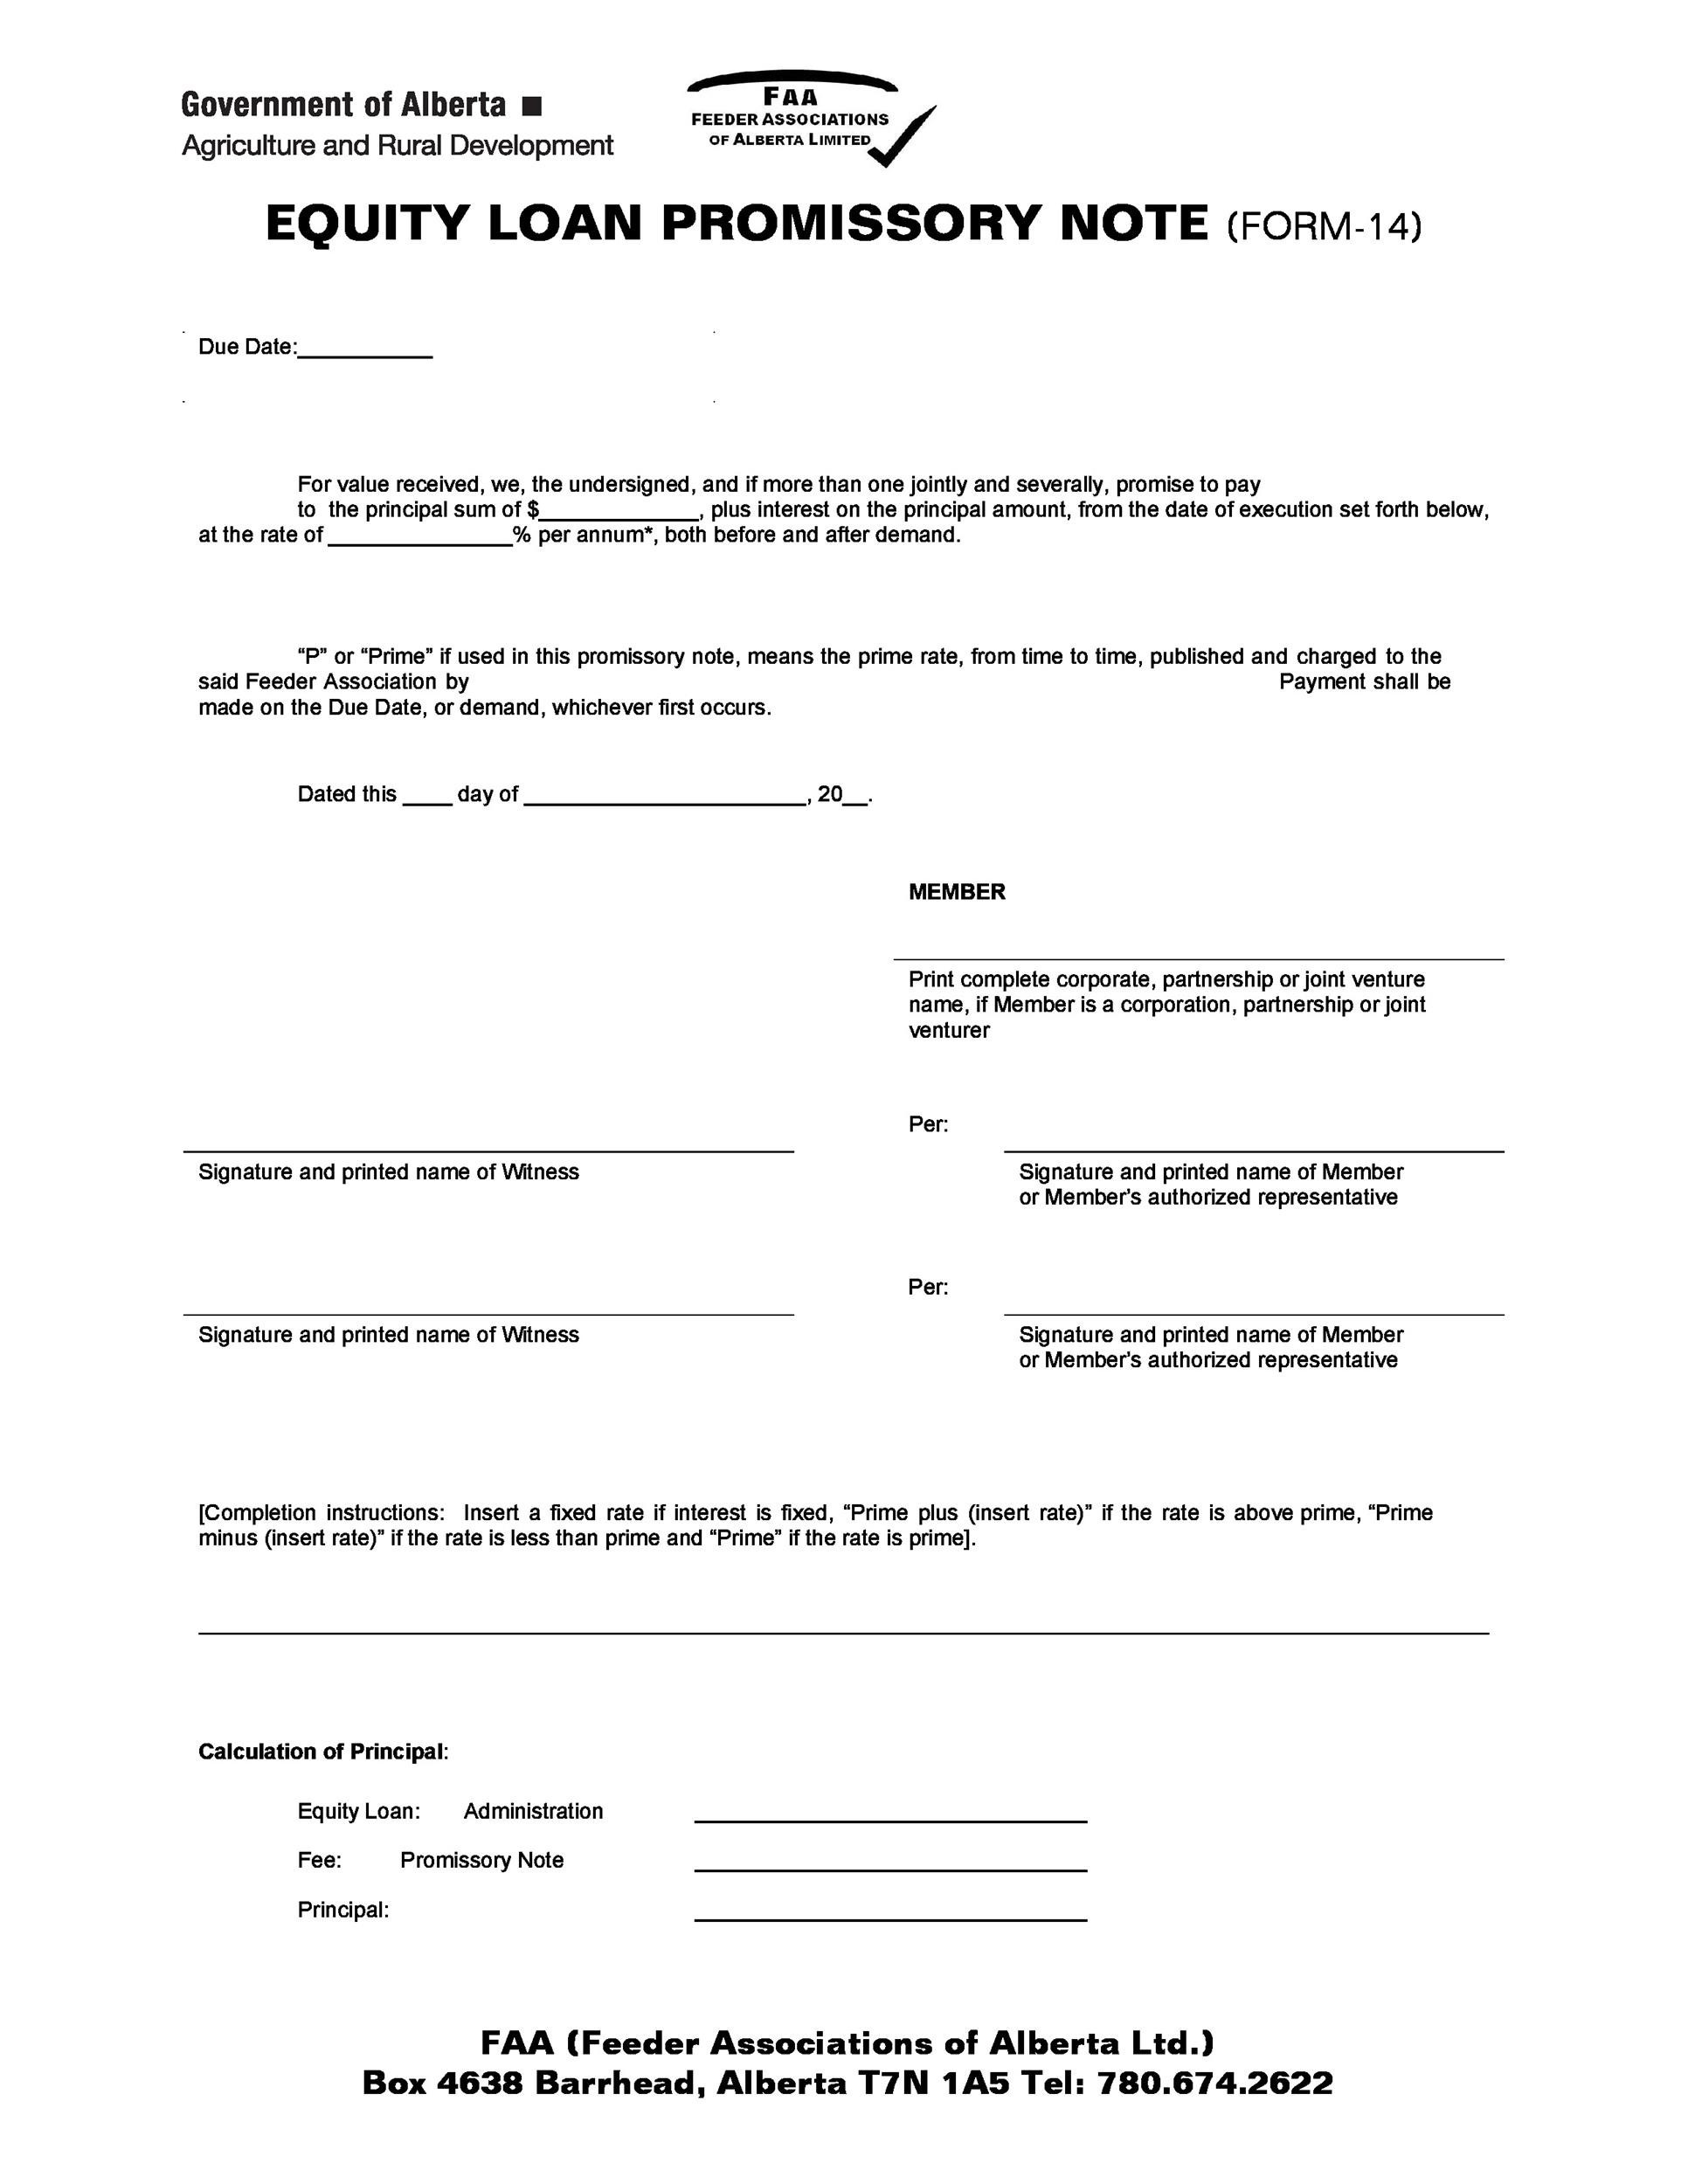 45 FREE Promissory Note Templates & Forms [Word & PDF] - Template Lab